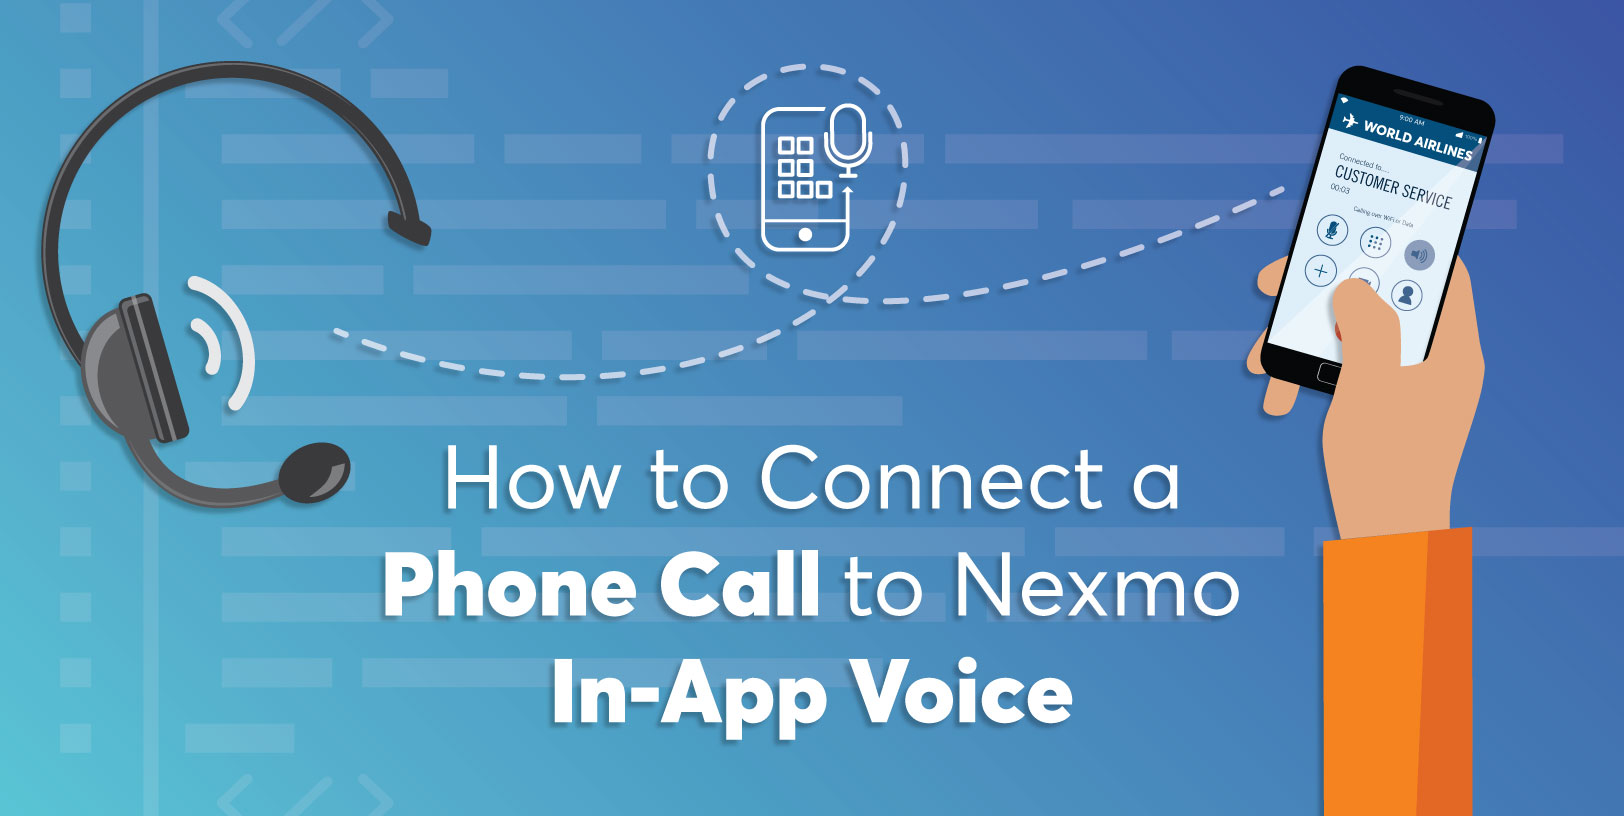 How to Connect a Phone Call to Nexmo In-App Voice